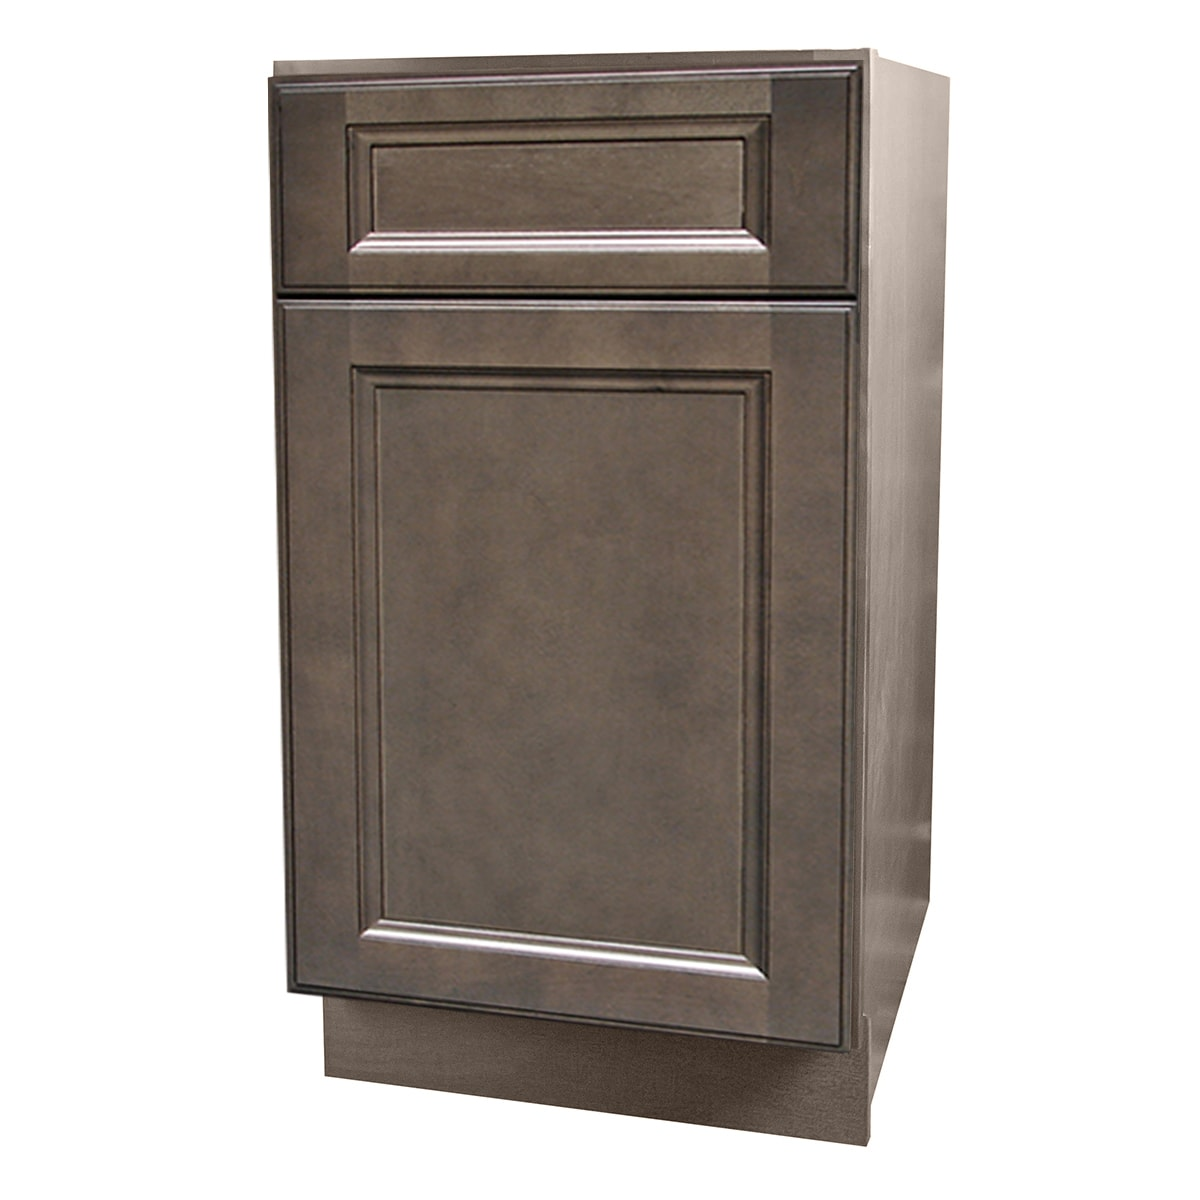 fashionable nj sale with cabinets by craigslist cabinet kitchen excellent inspiration owner for and idea ideas used